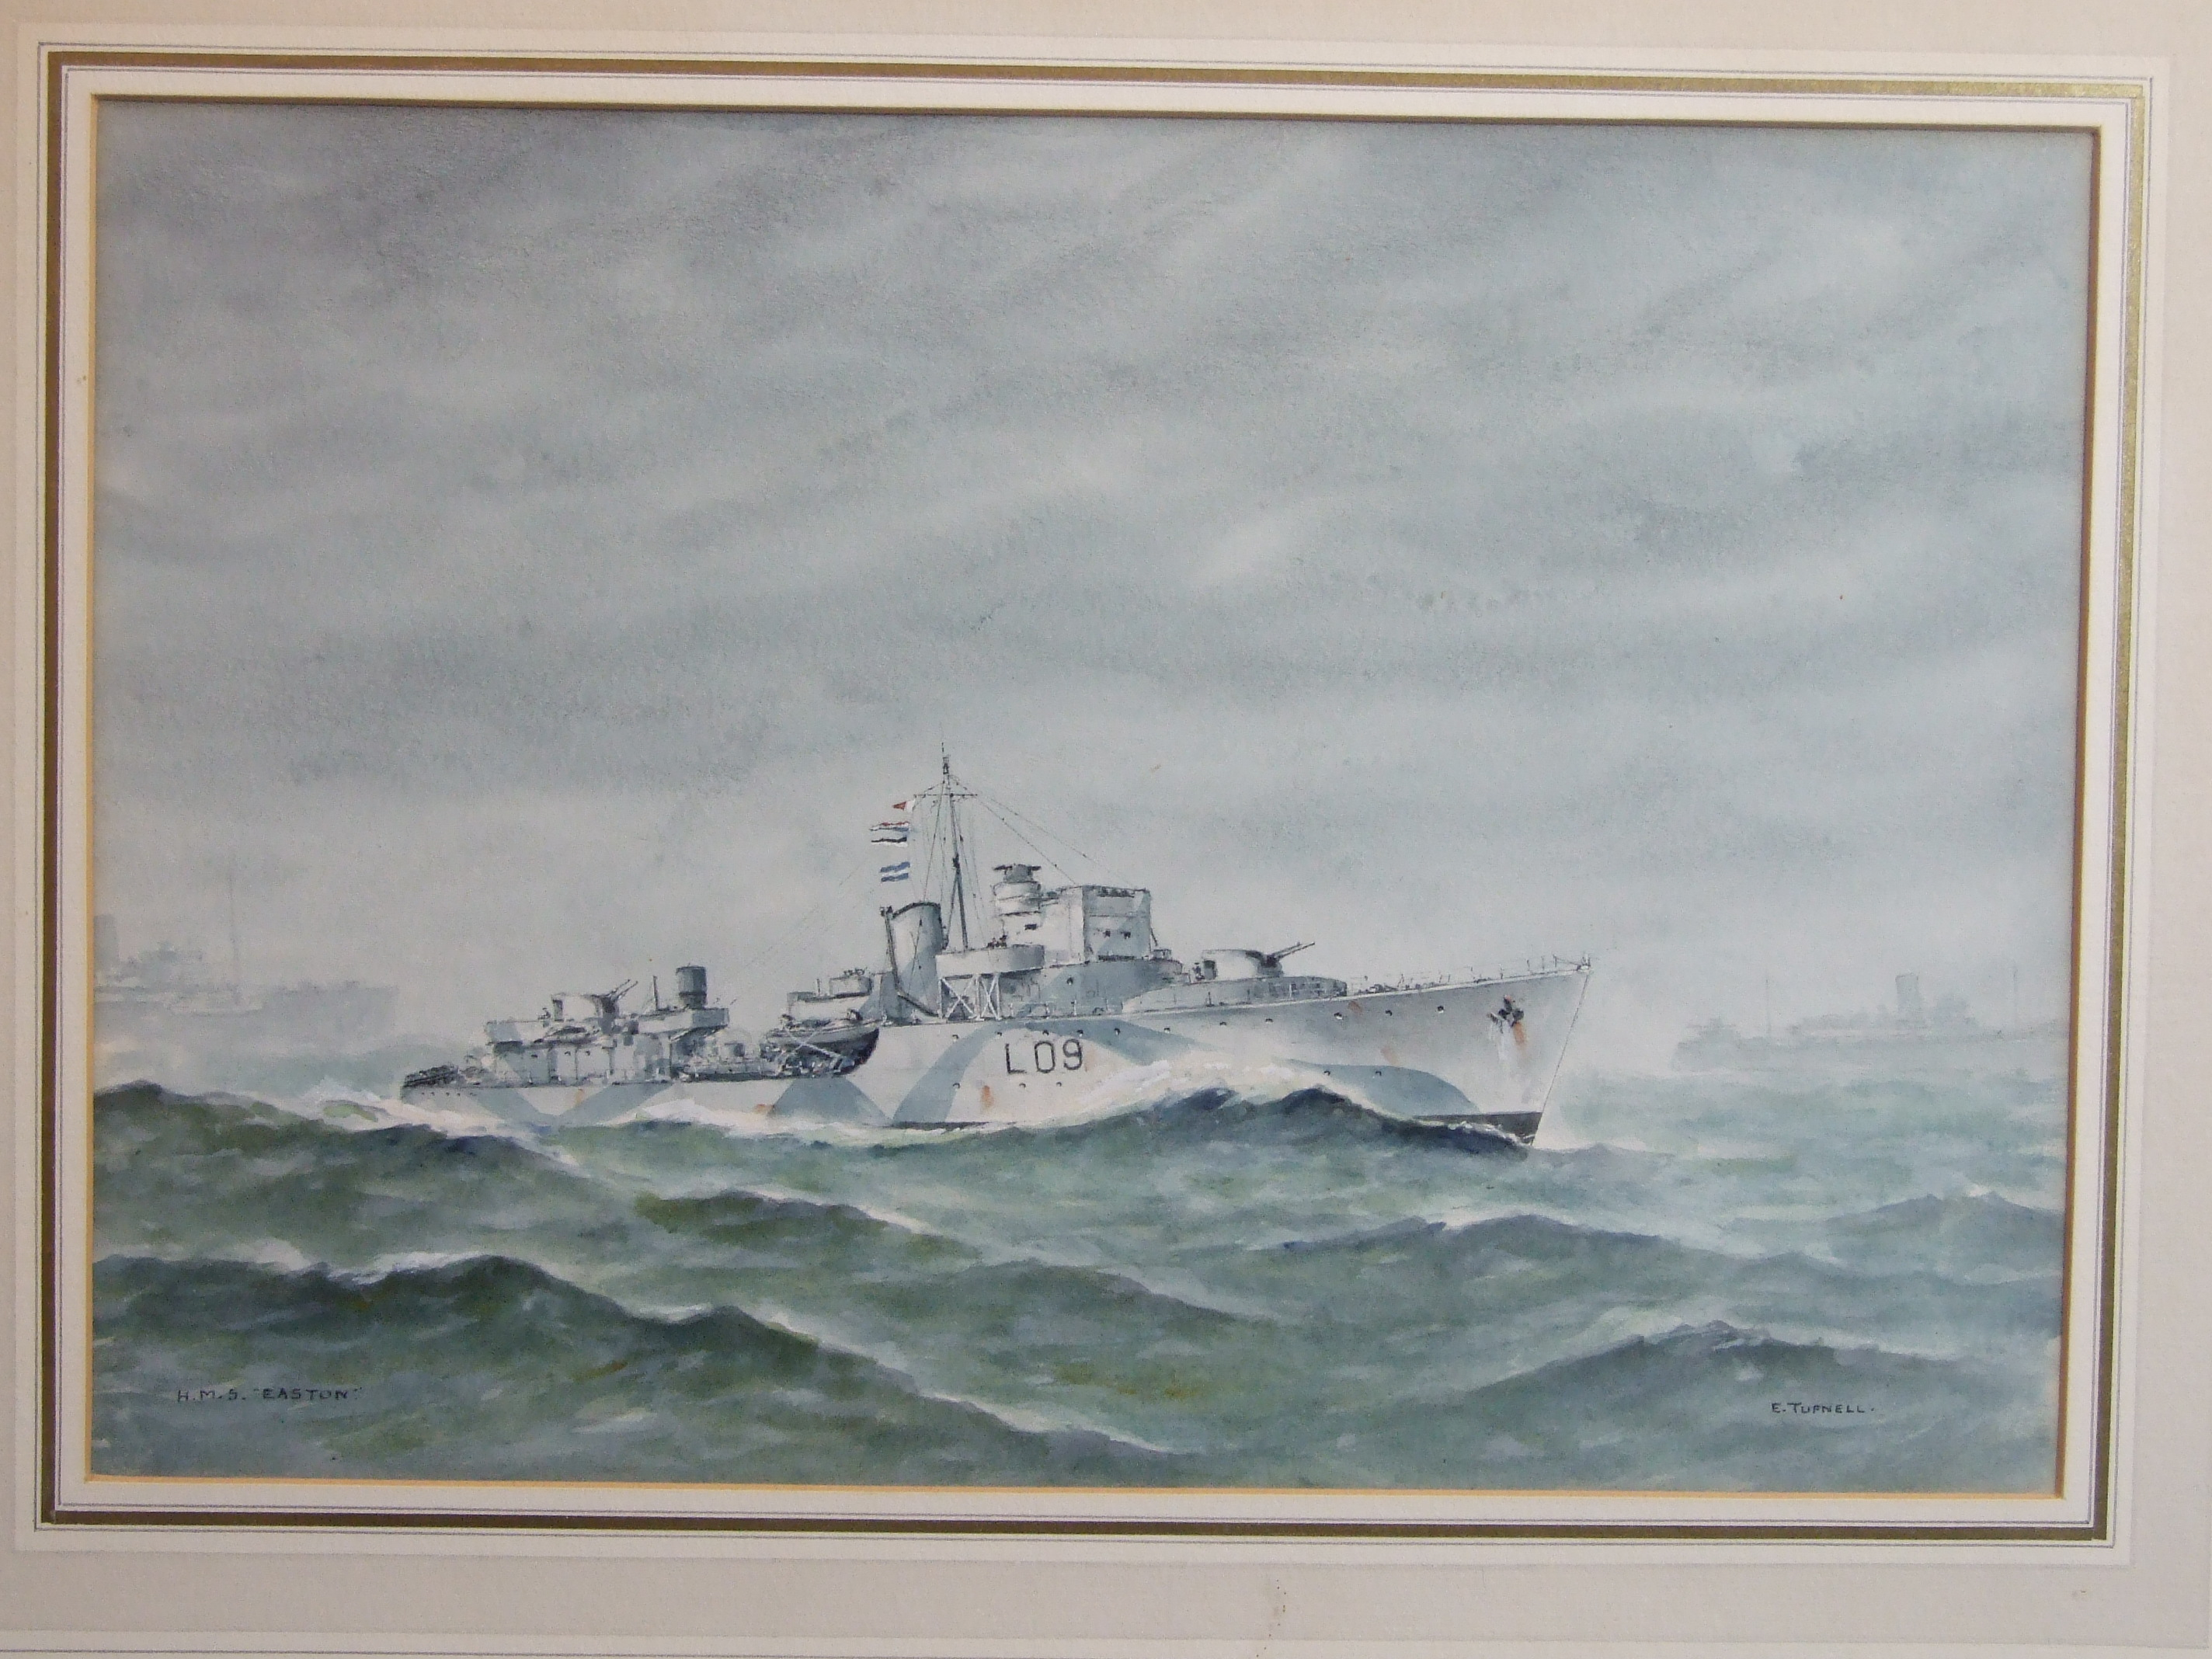 Lot 57 - •Eric Erskine Campbell Tufnell (1888-1978) HMS EASTON L 09 ESCORT DESTROYER WITH OTHER VESSELS IN